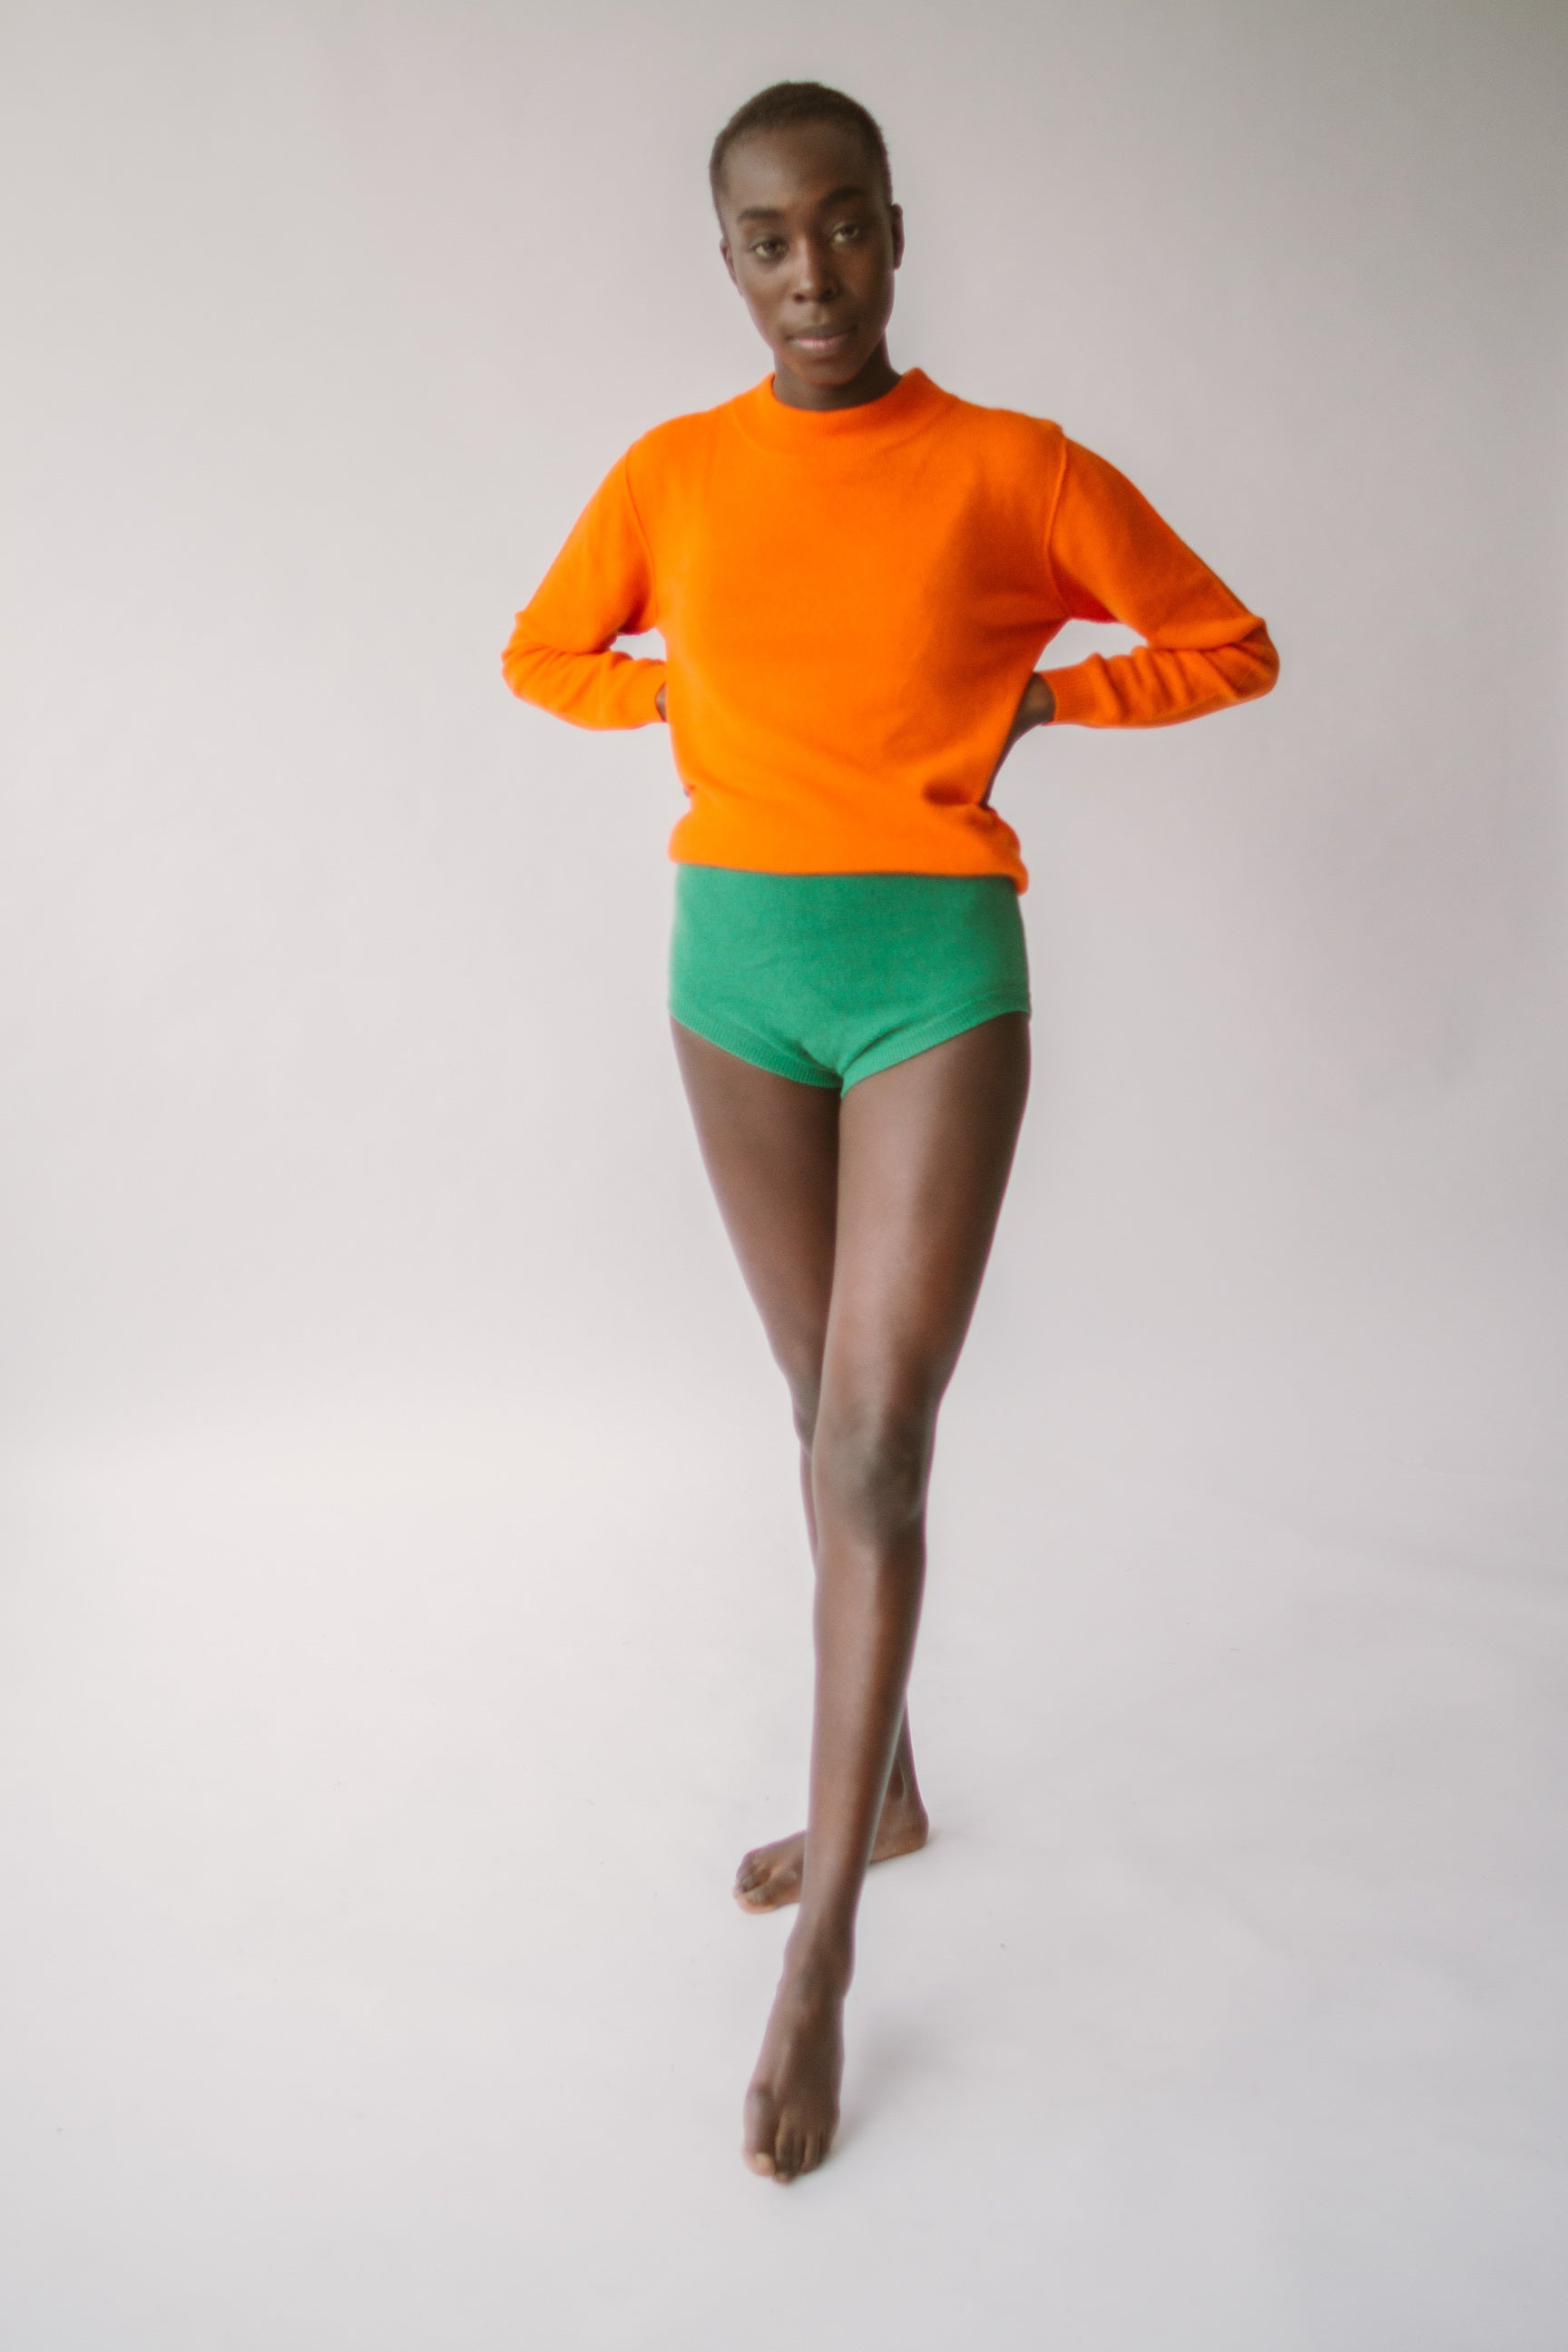 orange almost polo and green knickers